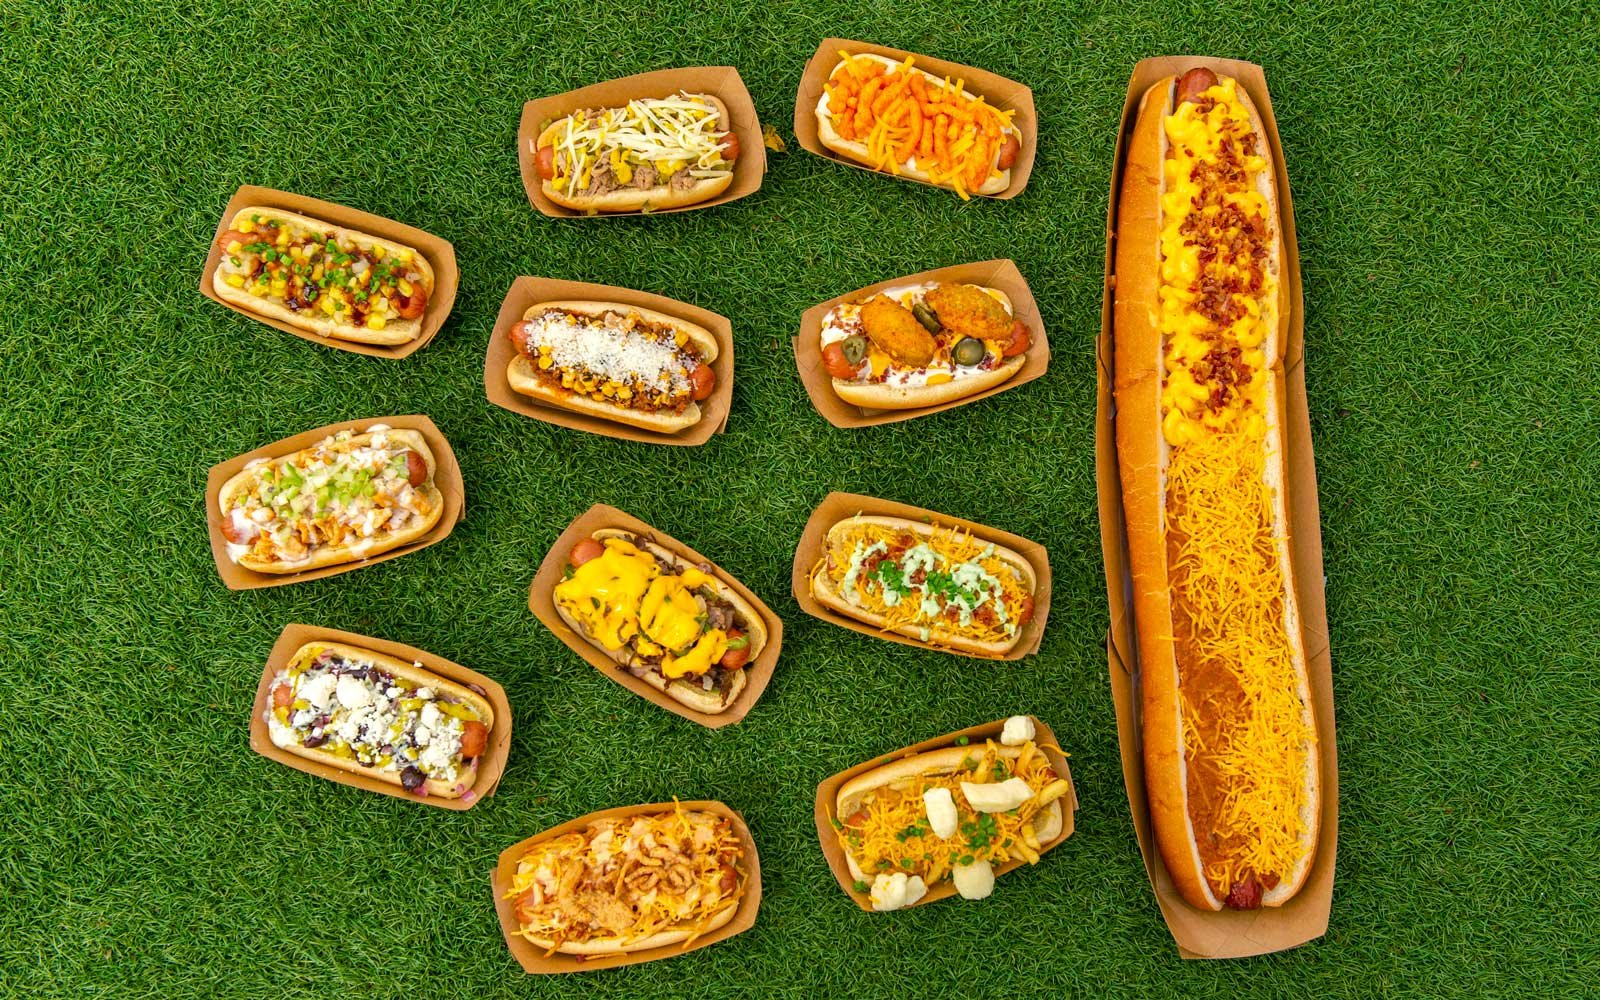 Take part in a hot dog advent calendar.